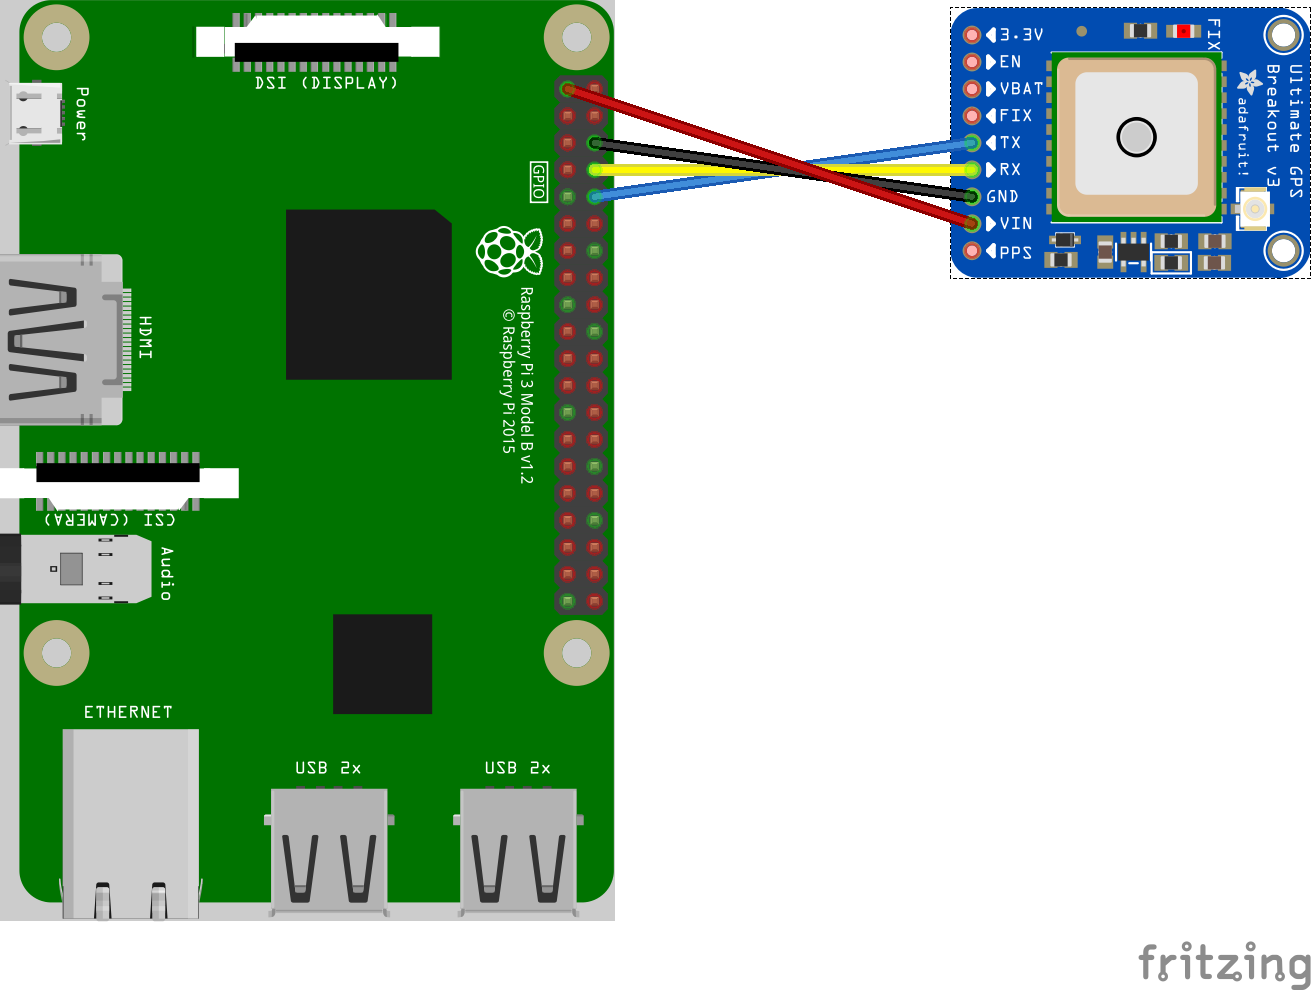 GPS Receiver for Raspberry Pi With Easy Instructions and FREE SOFTWARE Project